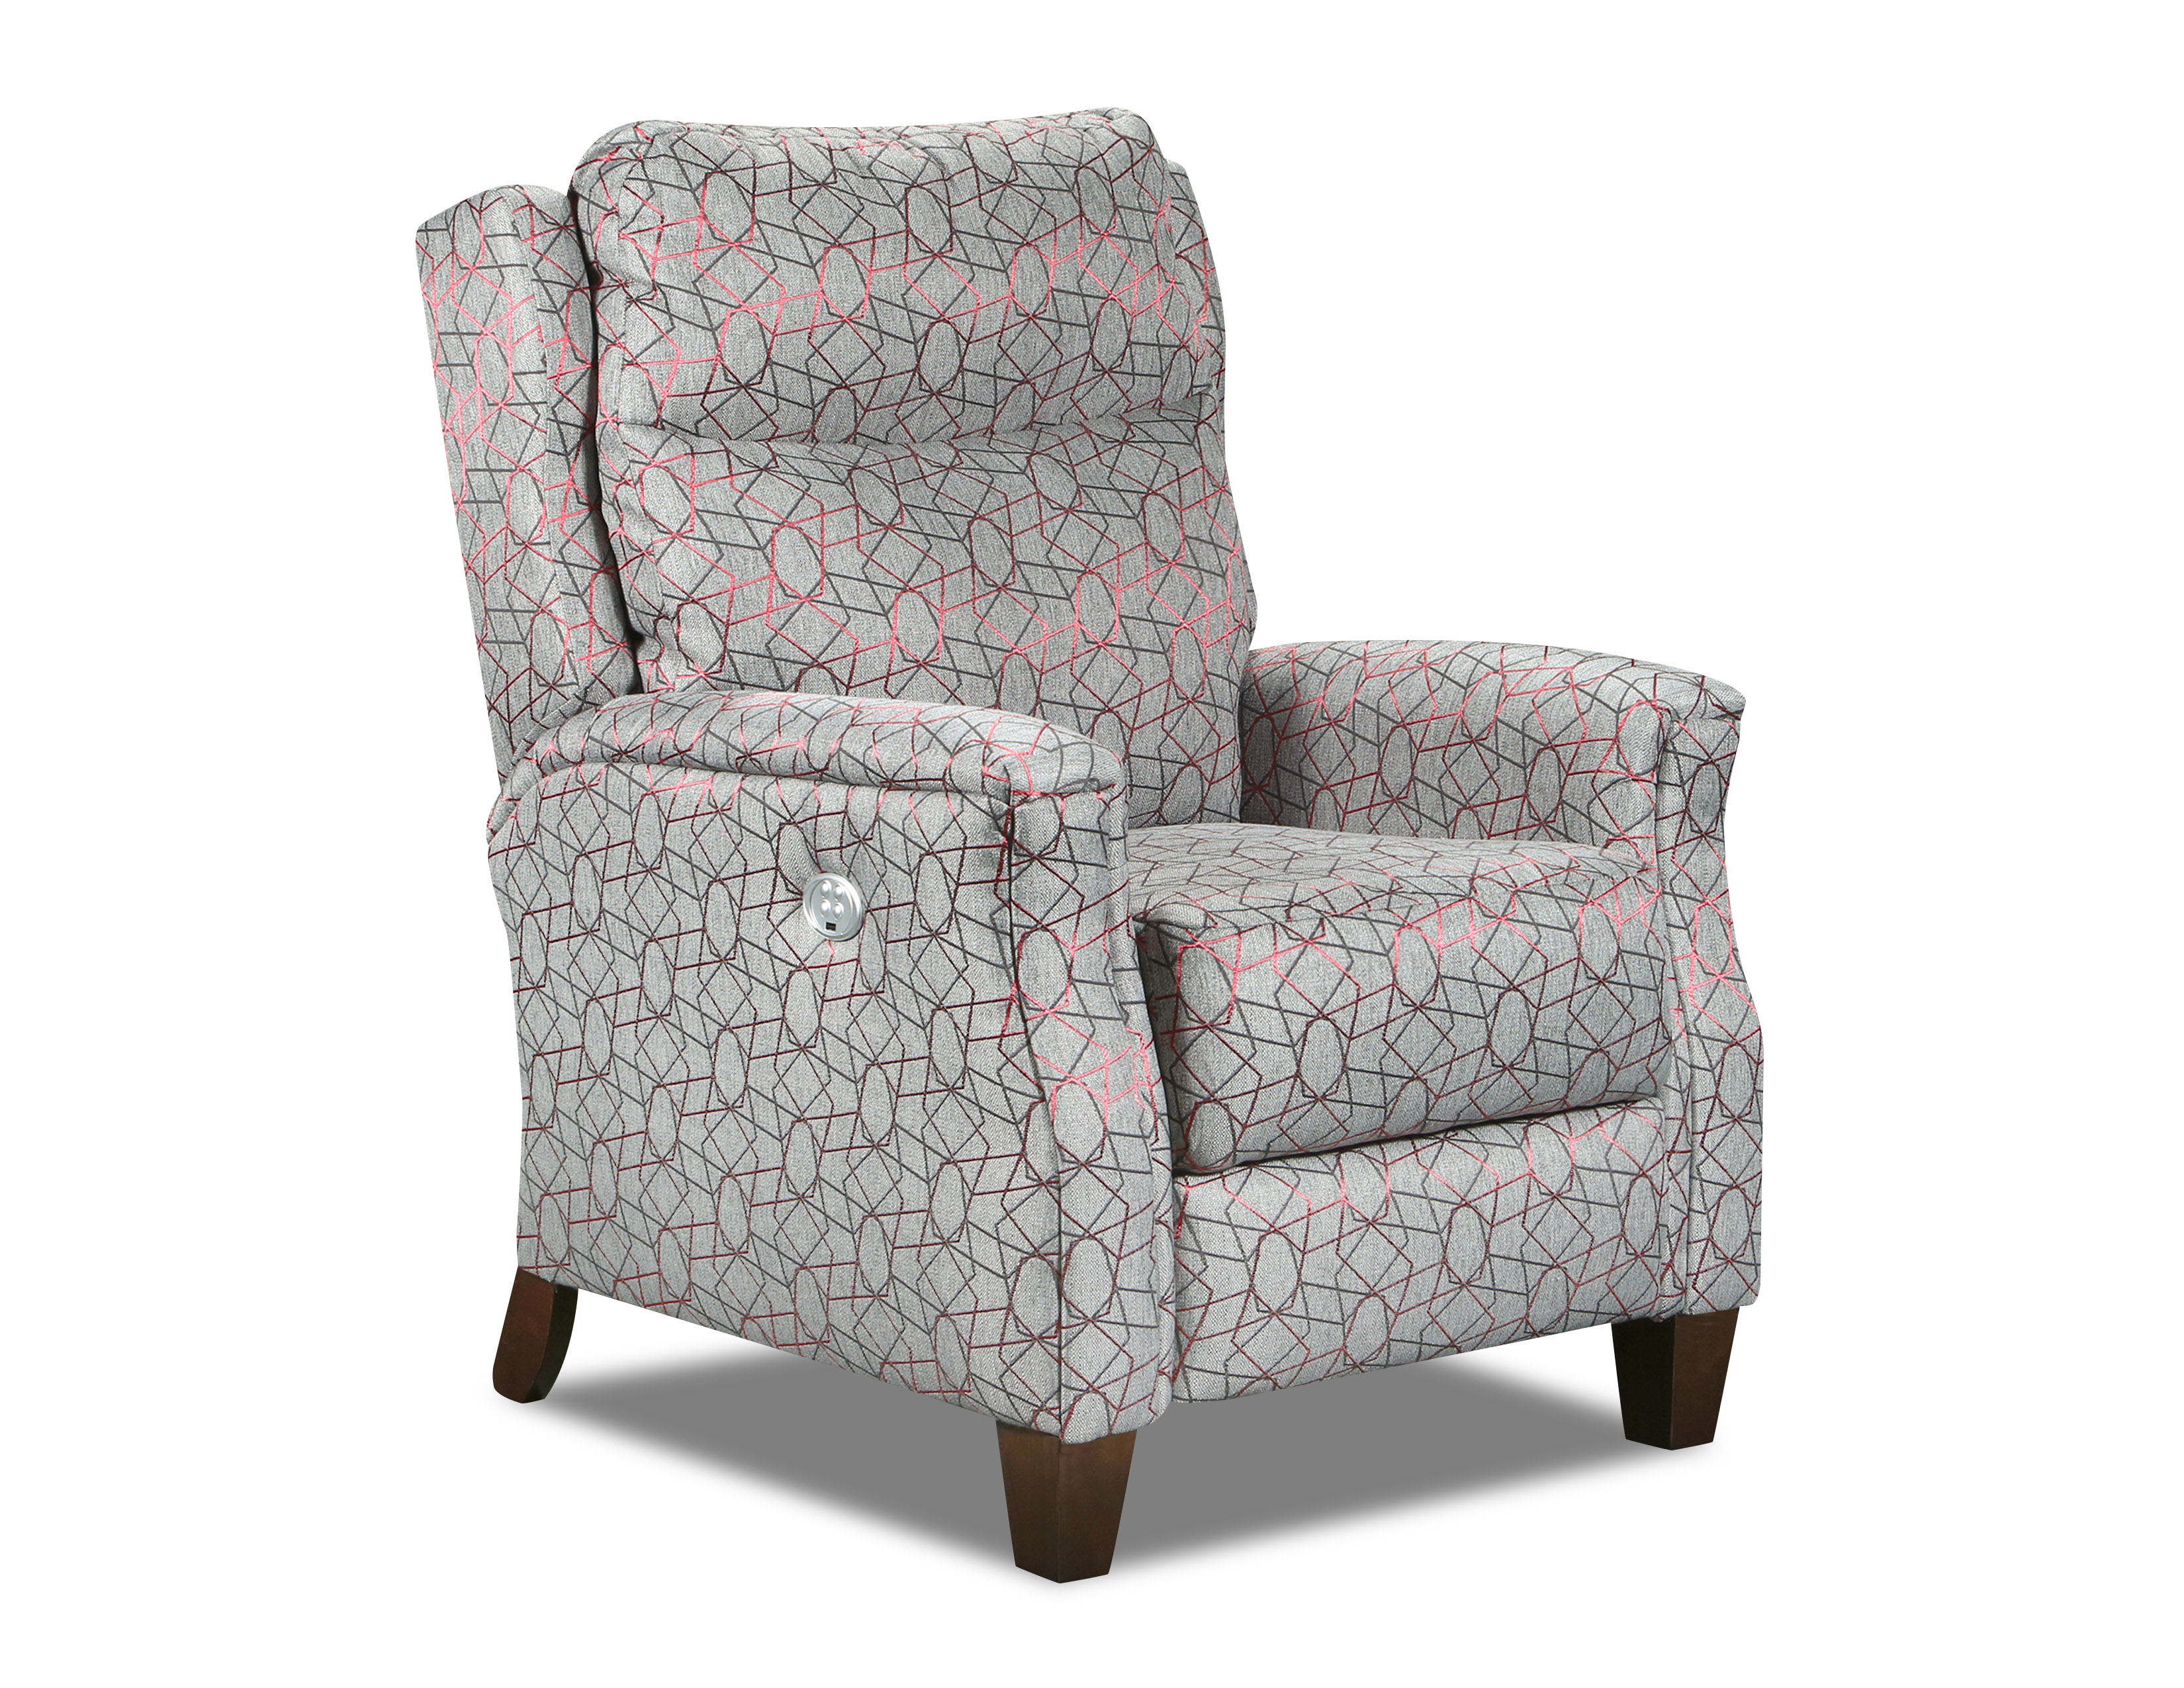 1620 Bowie Recliner Image